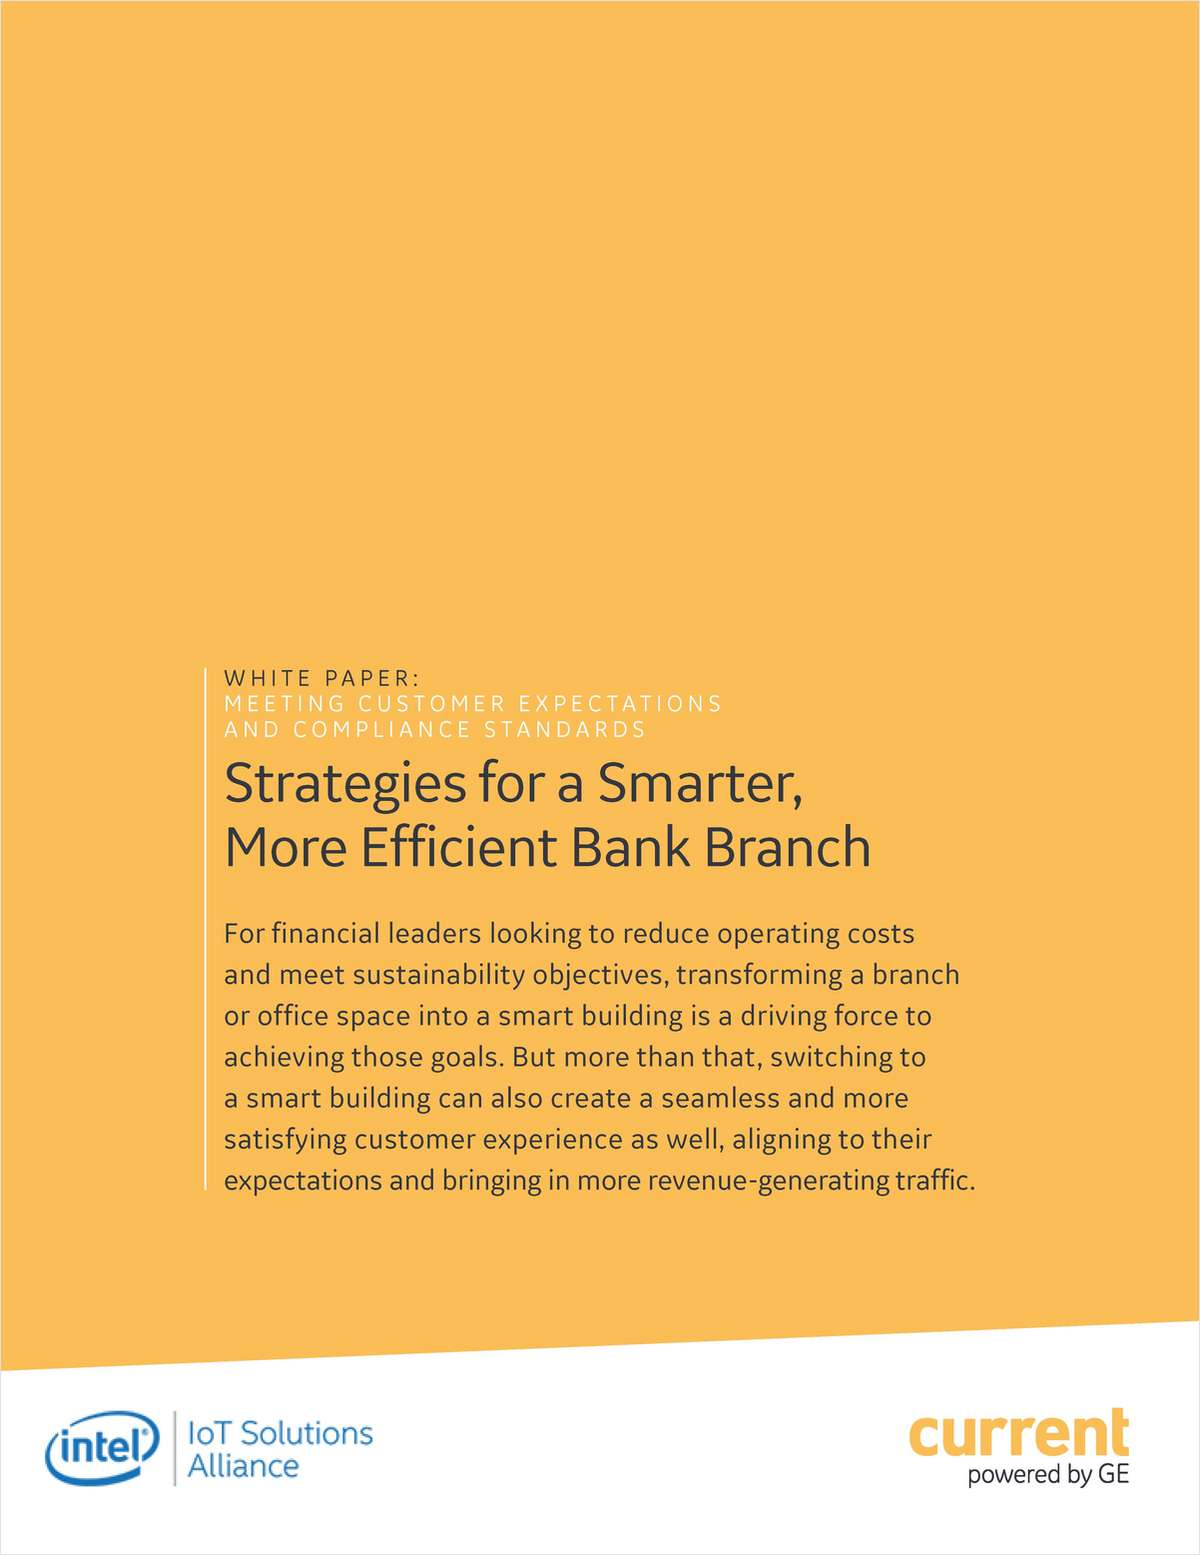 Strategies for a Smarter, More Efficient Bank Branch